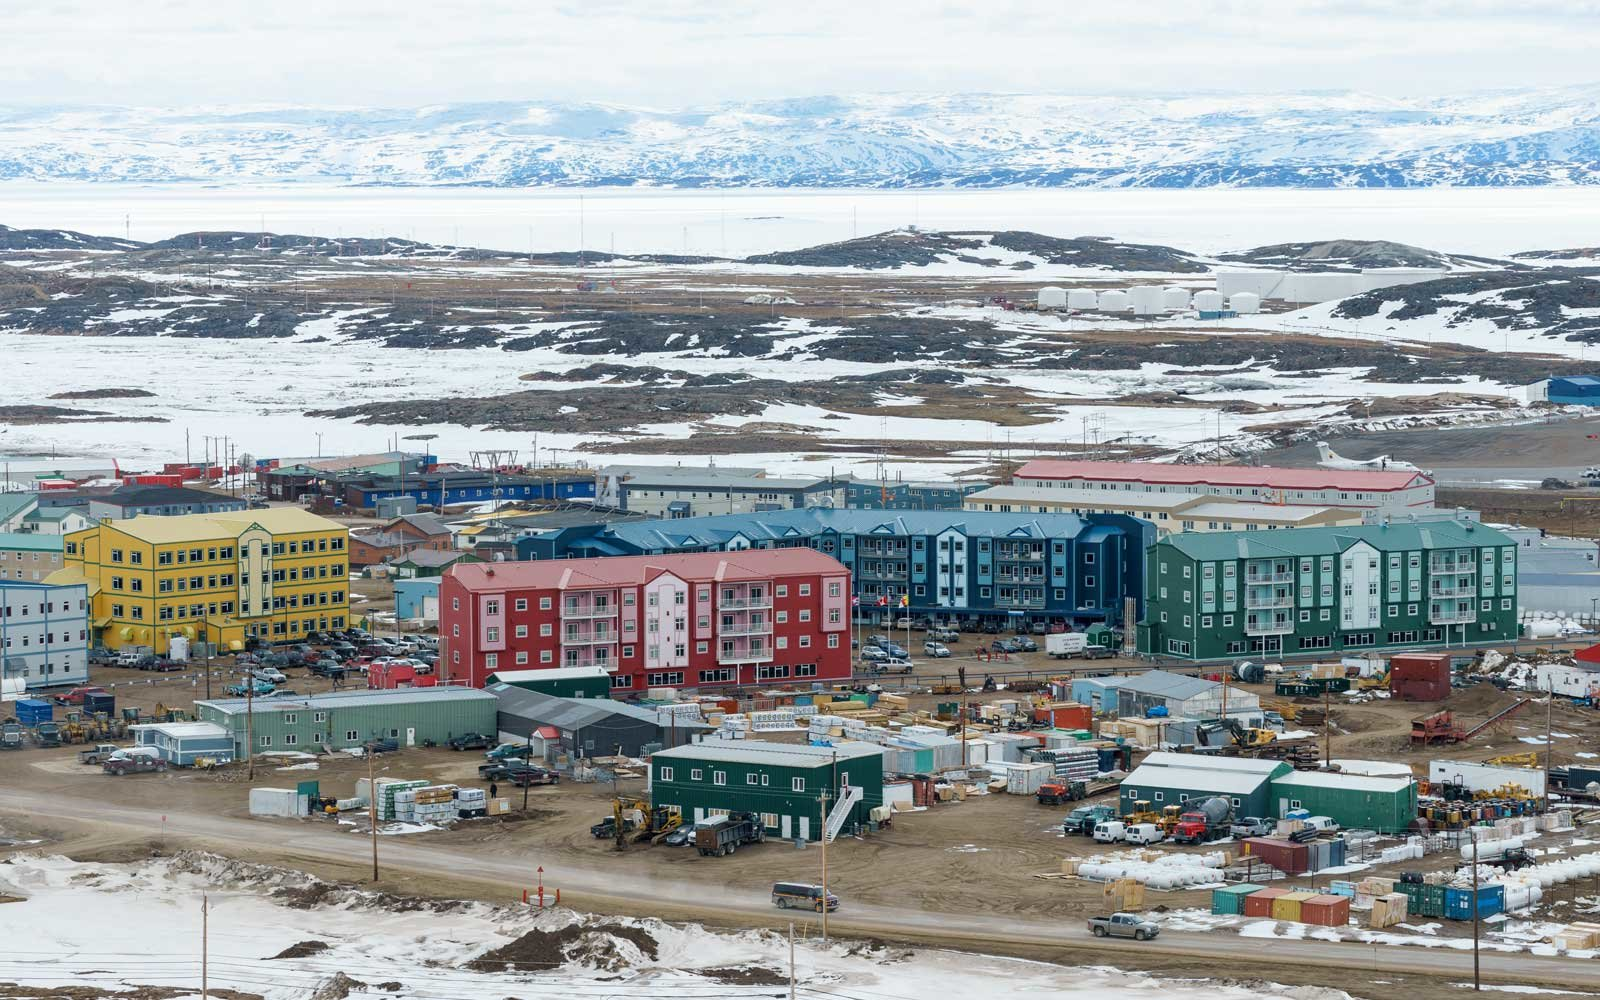 Modern arctic housing in Iqaluit, capital of Nunavut territory, Canada, in the spring.